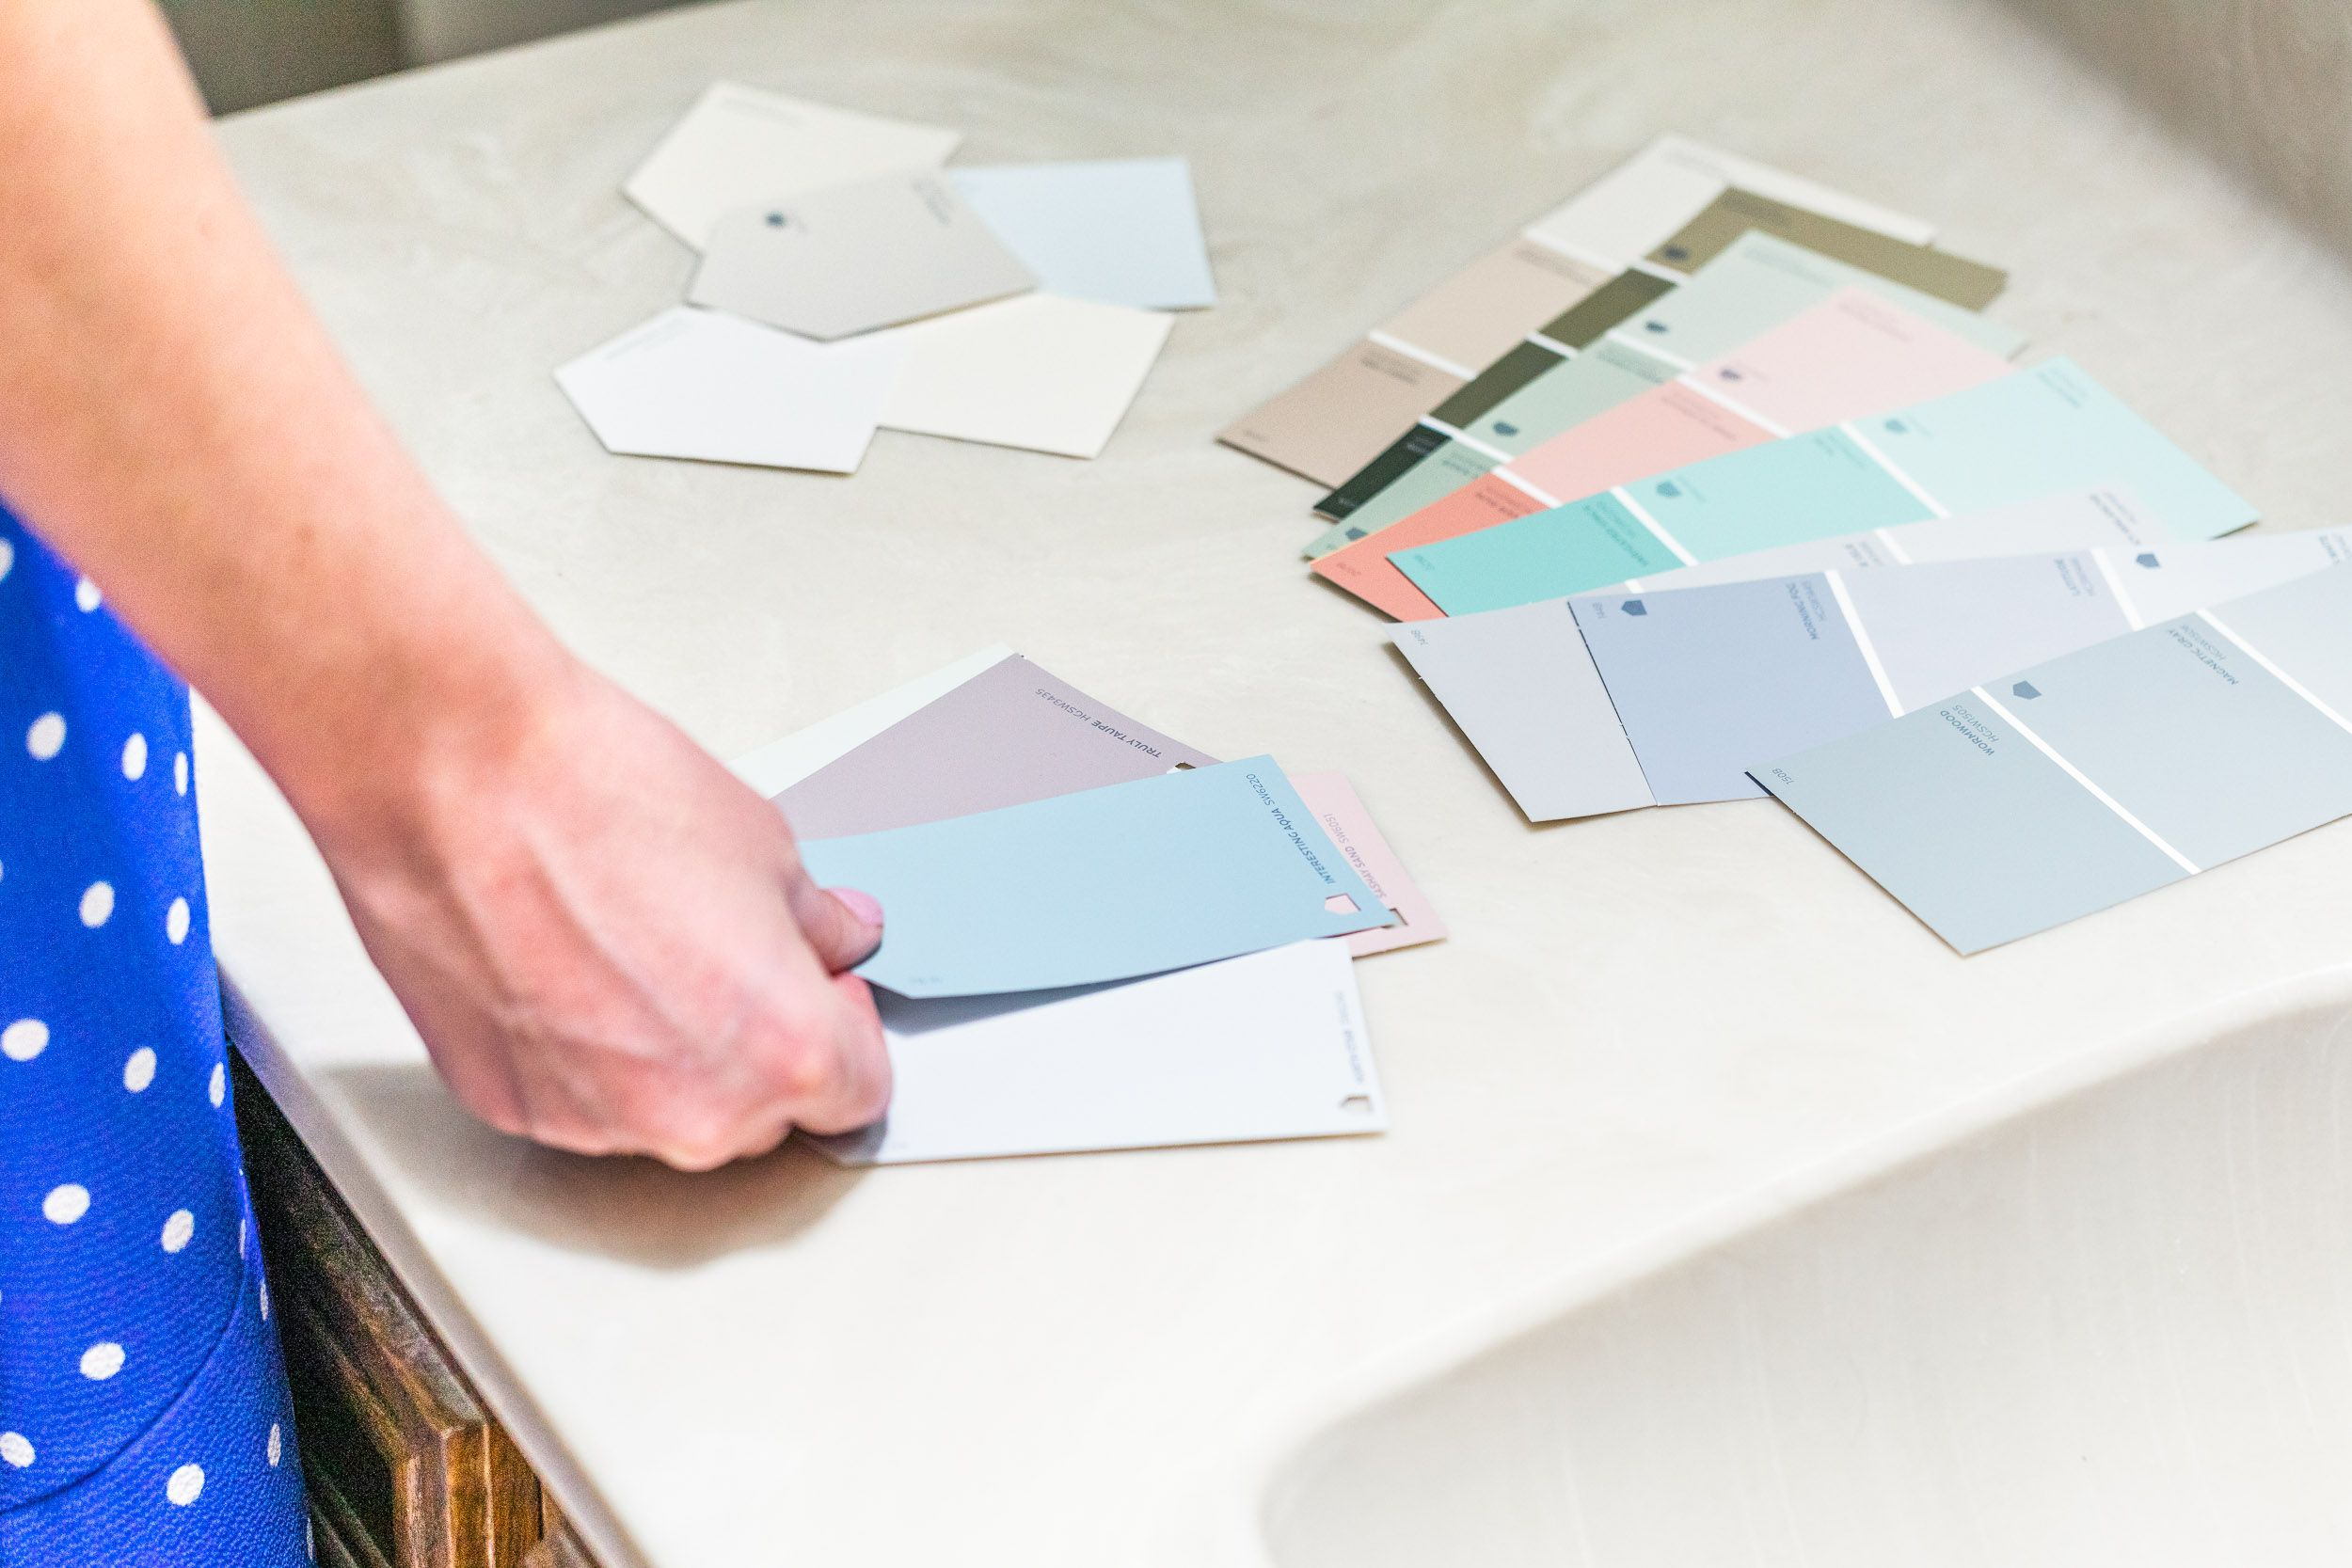 Bathroom Paint What To Know Before You Buy,Egyptian Cotton Percale Sheets Australia